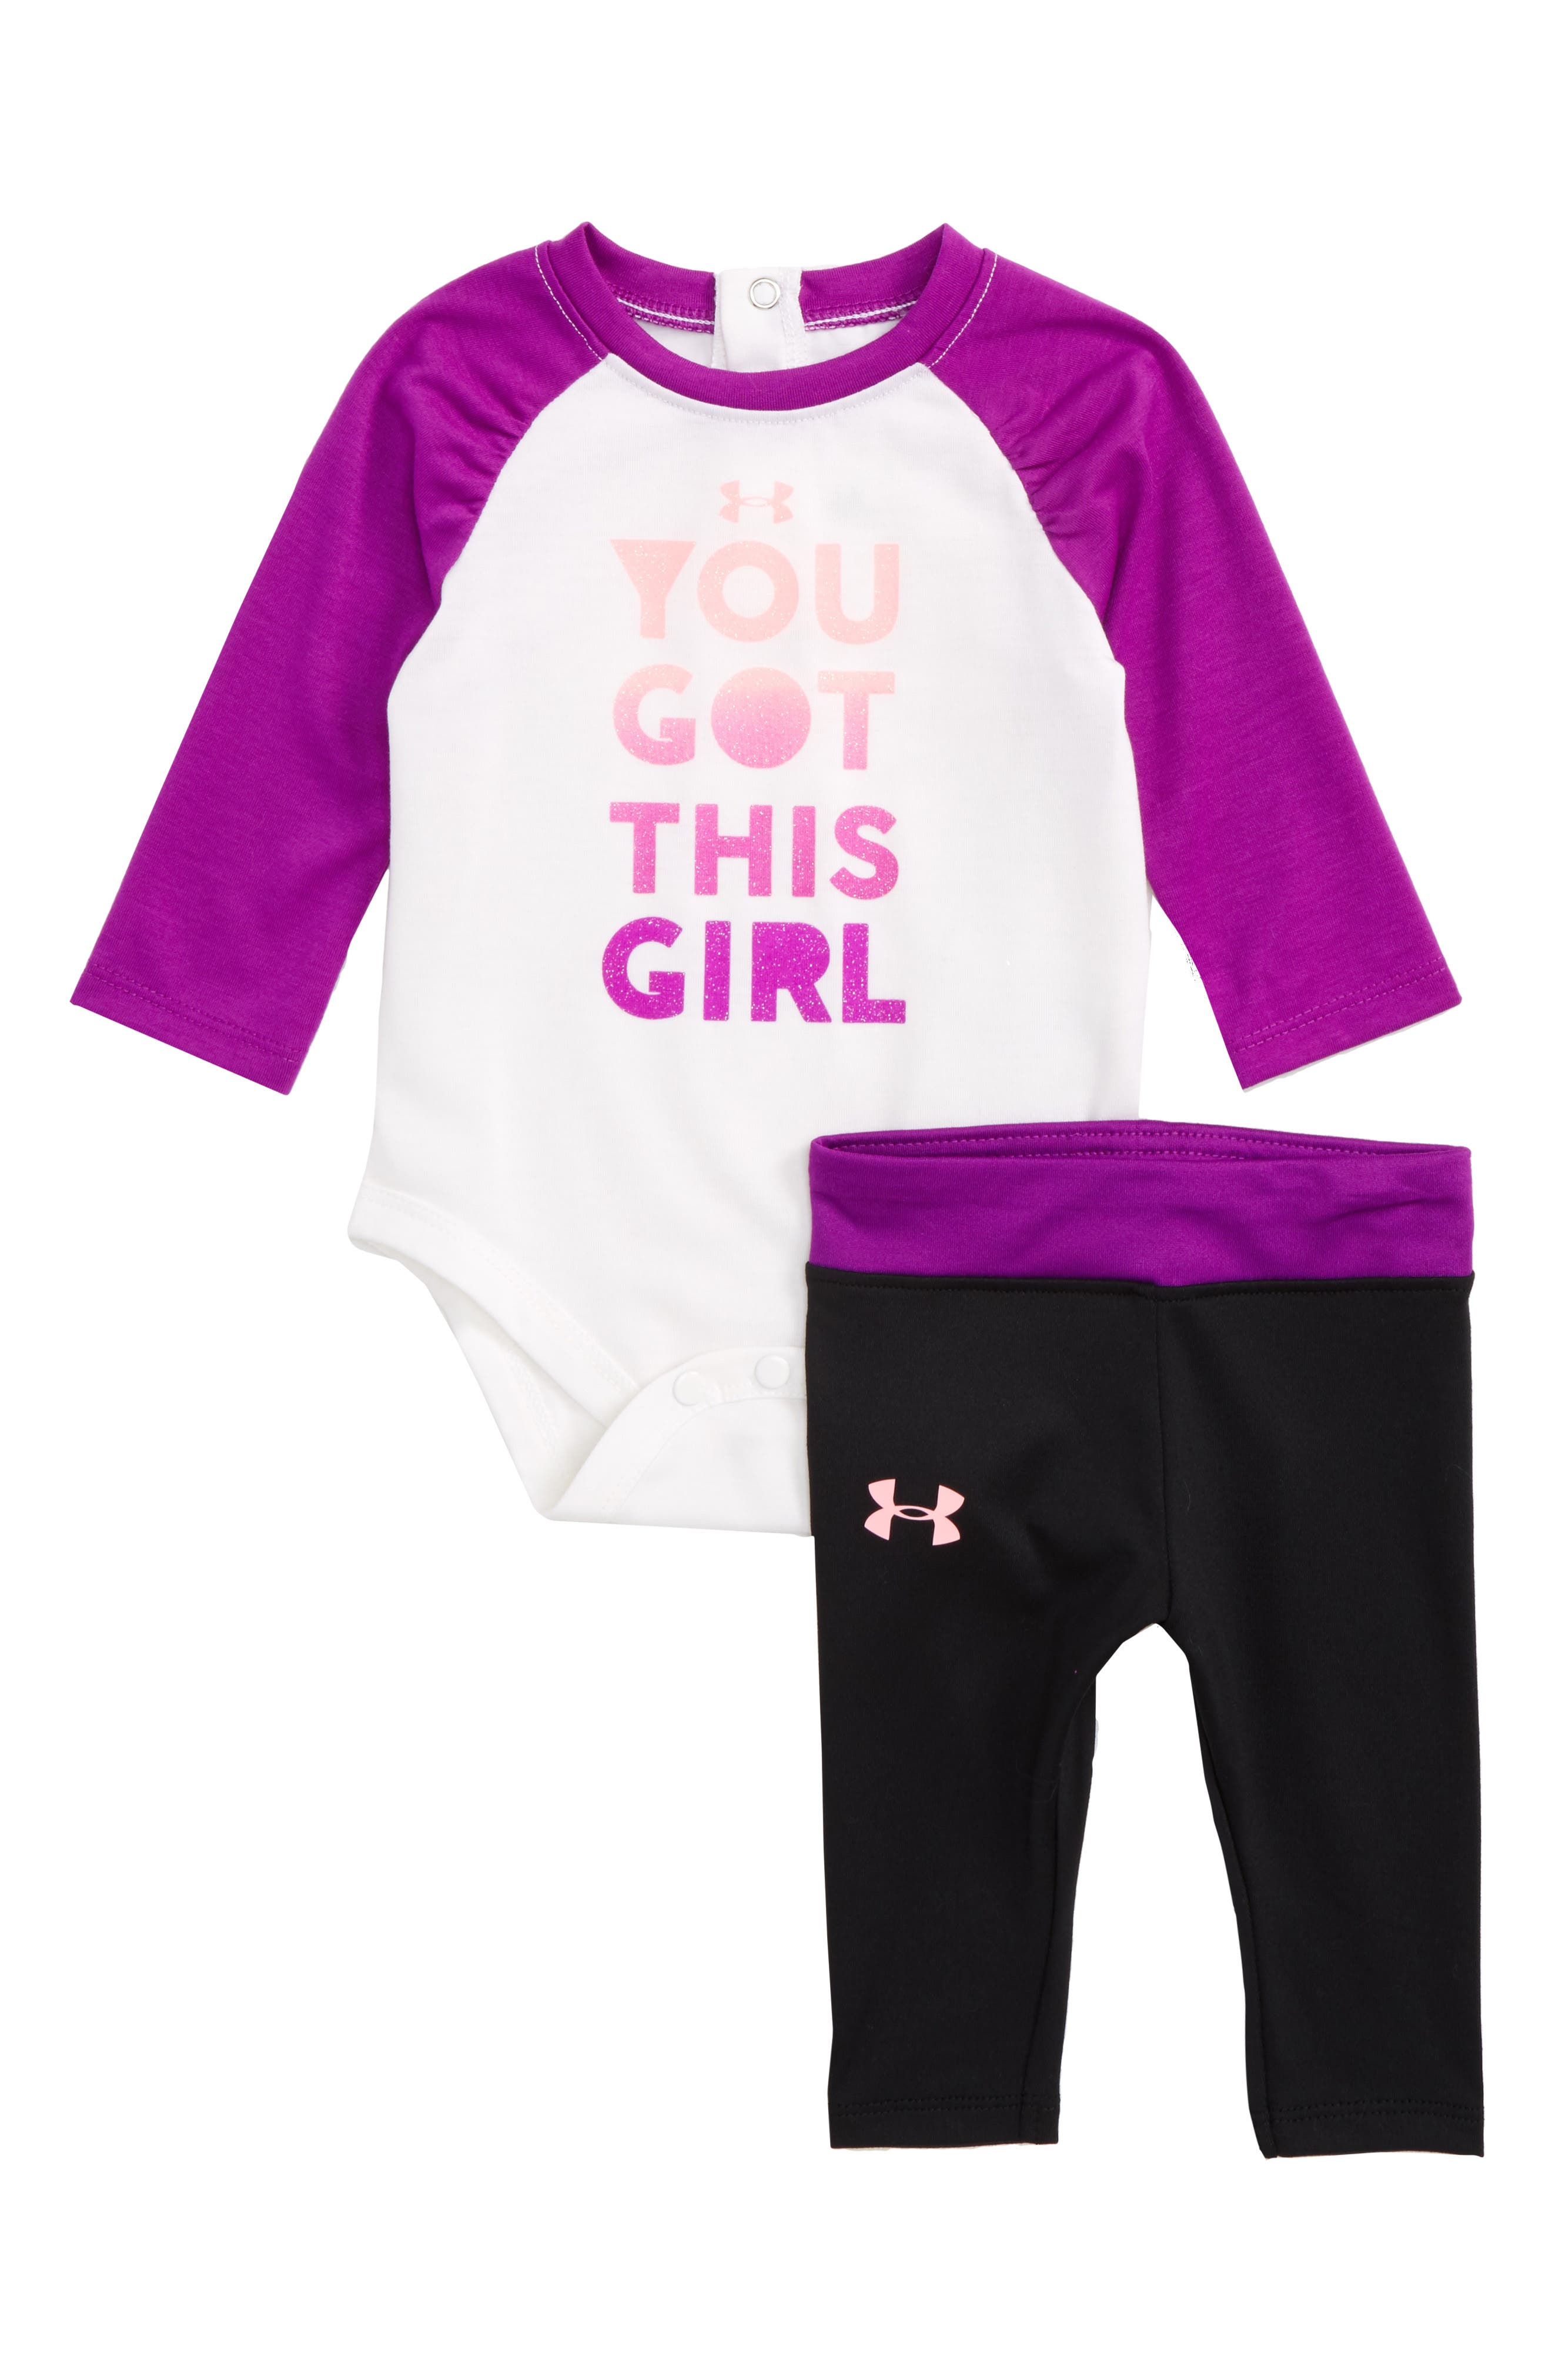 Under Armour You Got This Girl Bodysuit & Pants Set (Baby Girls)